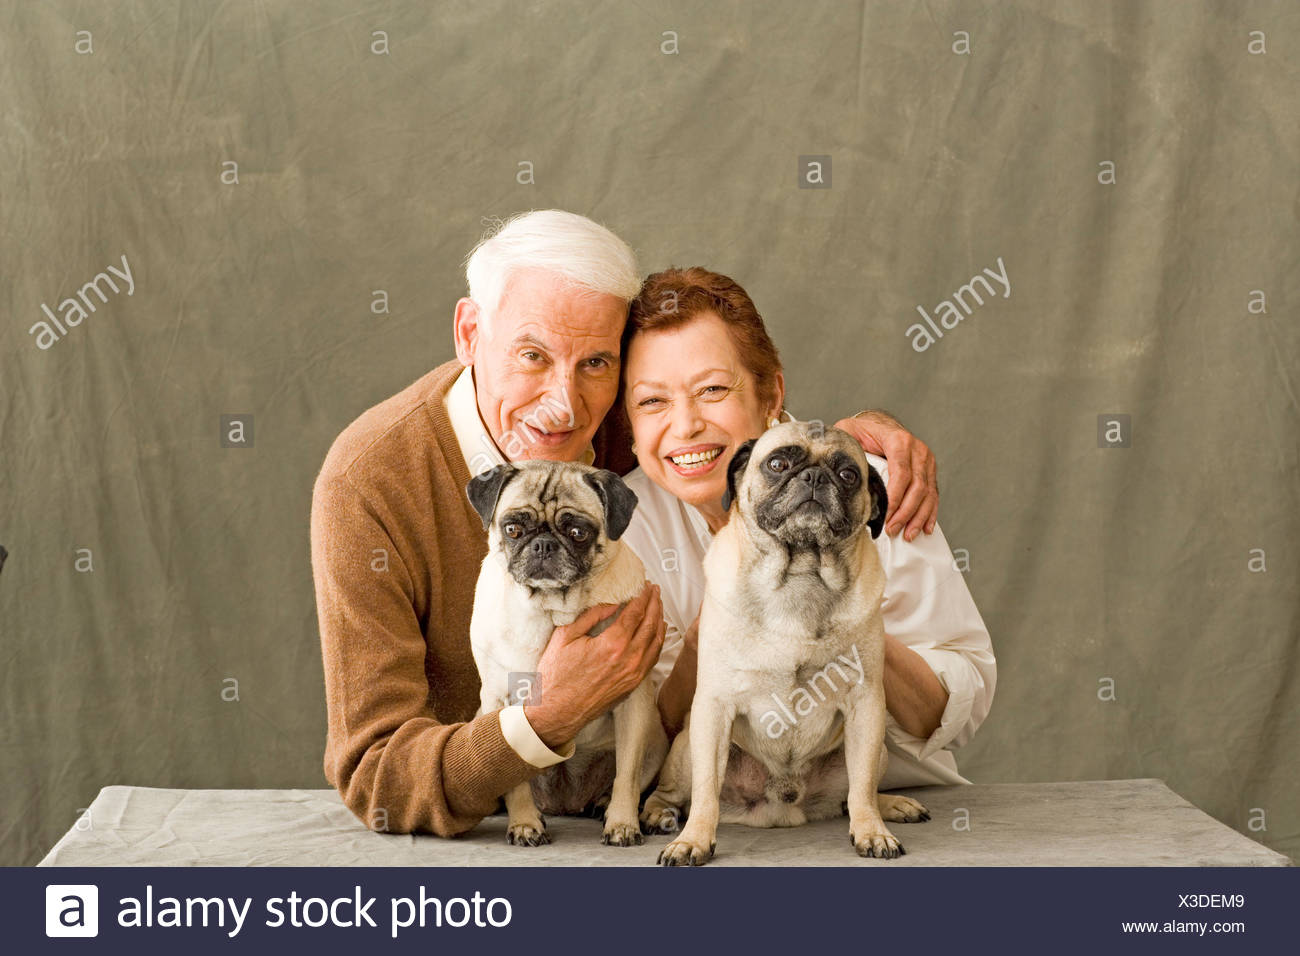 Old couple posing with two dogs - Stock Image